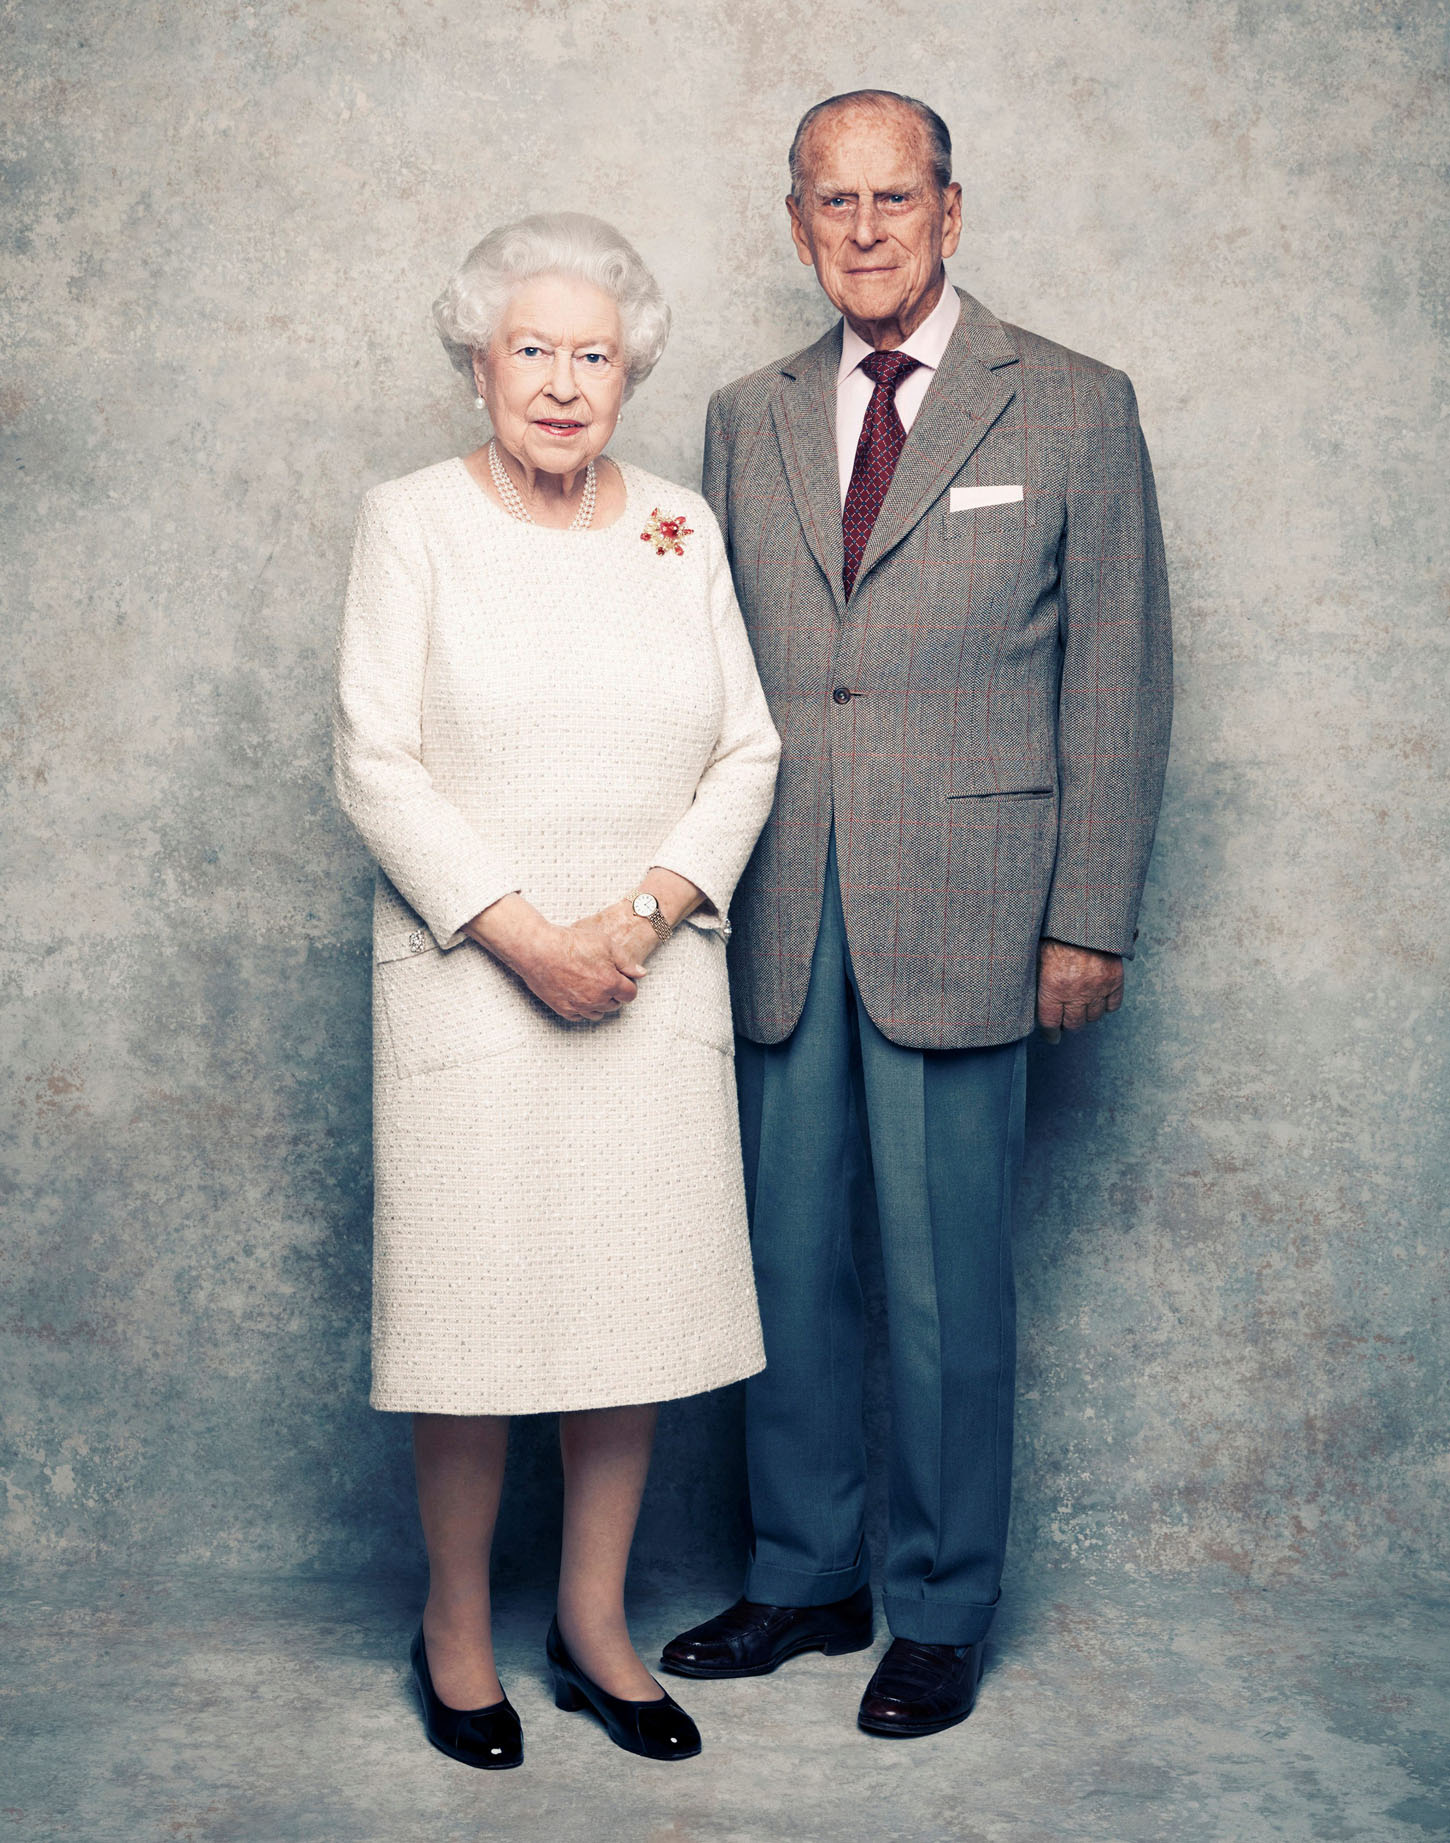 A handout photo shows Britain's Queen Elizabeth and Prince Philip in the White Drawing Room at Windsor Castle in early November, pictured against a platinum-textured backdrop, in celebration of their platinum wedding anniversary on November 20, 2017. Matt Holyoak/CameraPress/PA Wire/Handout via REUTERS      MANDATORY CREDIT. IMAGE IS PROVIDED FOR FREE EDITORIAL USE UNTIL DECEMBER 3RD. WHEN IT MUST BE REMOVED FROM ALL SYSTEMS AND THOSE OF YOUR SUBSCRIBERS. THIS PHOTOGRAPH IS STRICTLY FOR EDITORIAL USE ONLY, NO COMMERCIAL, SOUVENIR, COVERS OR PROMOTIONAL USE PERMITTED. THE PHOTOGRAPH CANNOT BE CROPPED, MANIPULATED OR ALTERED IN ANY WAY. THIS PICTURE WAS PROVIDED BY A THIRD PARTY. NO RESALES. NO ARCHIVE.     TPX IMAGES OF THE DAY